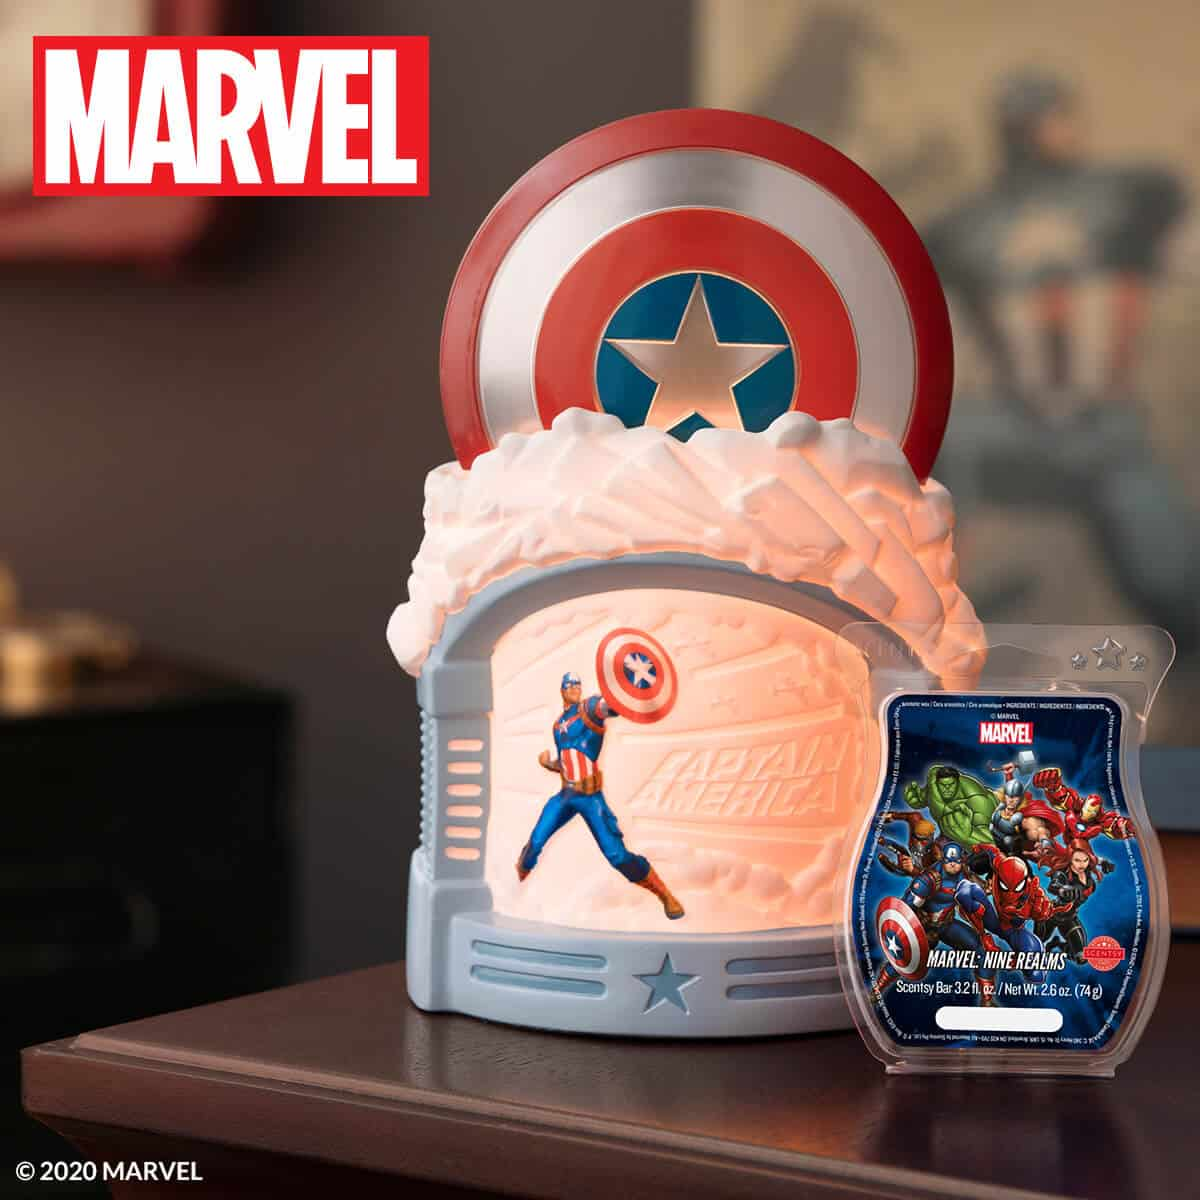 MARVEL: CAPTAIN AMERICA, SPIDER-MAN, IRON MAN SCENTSY WARMERS